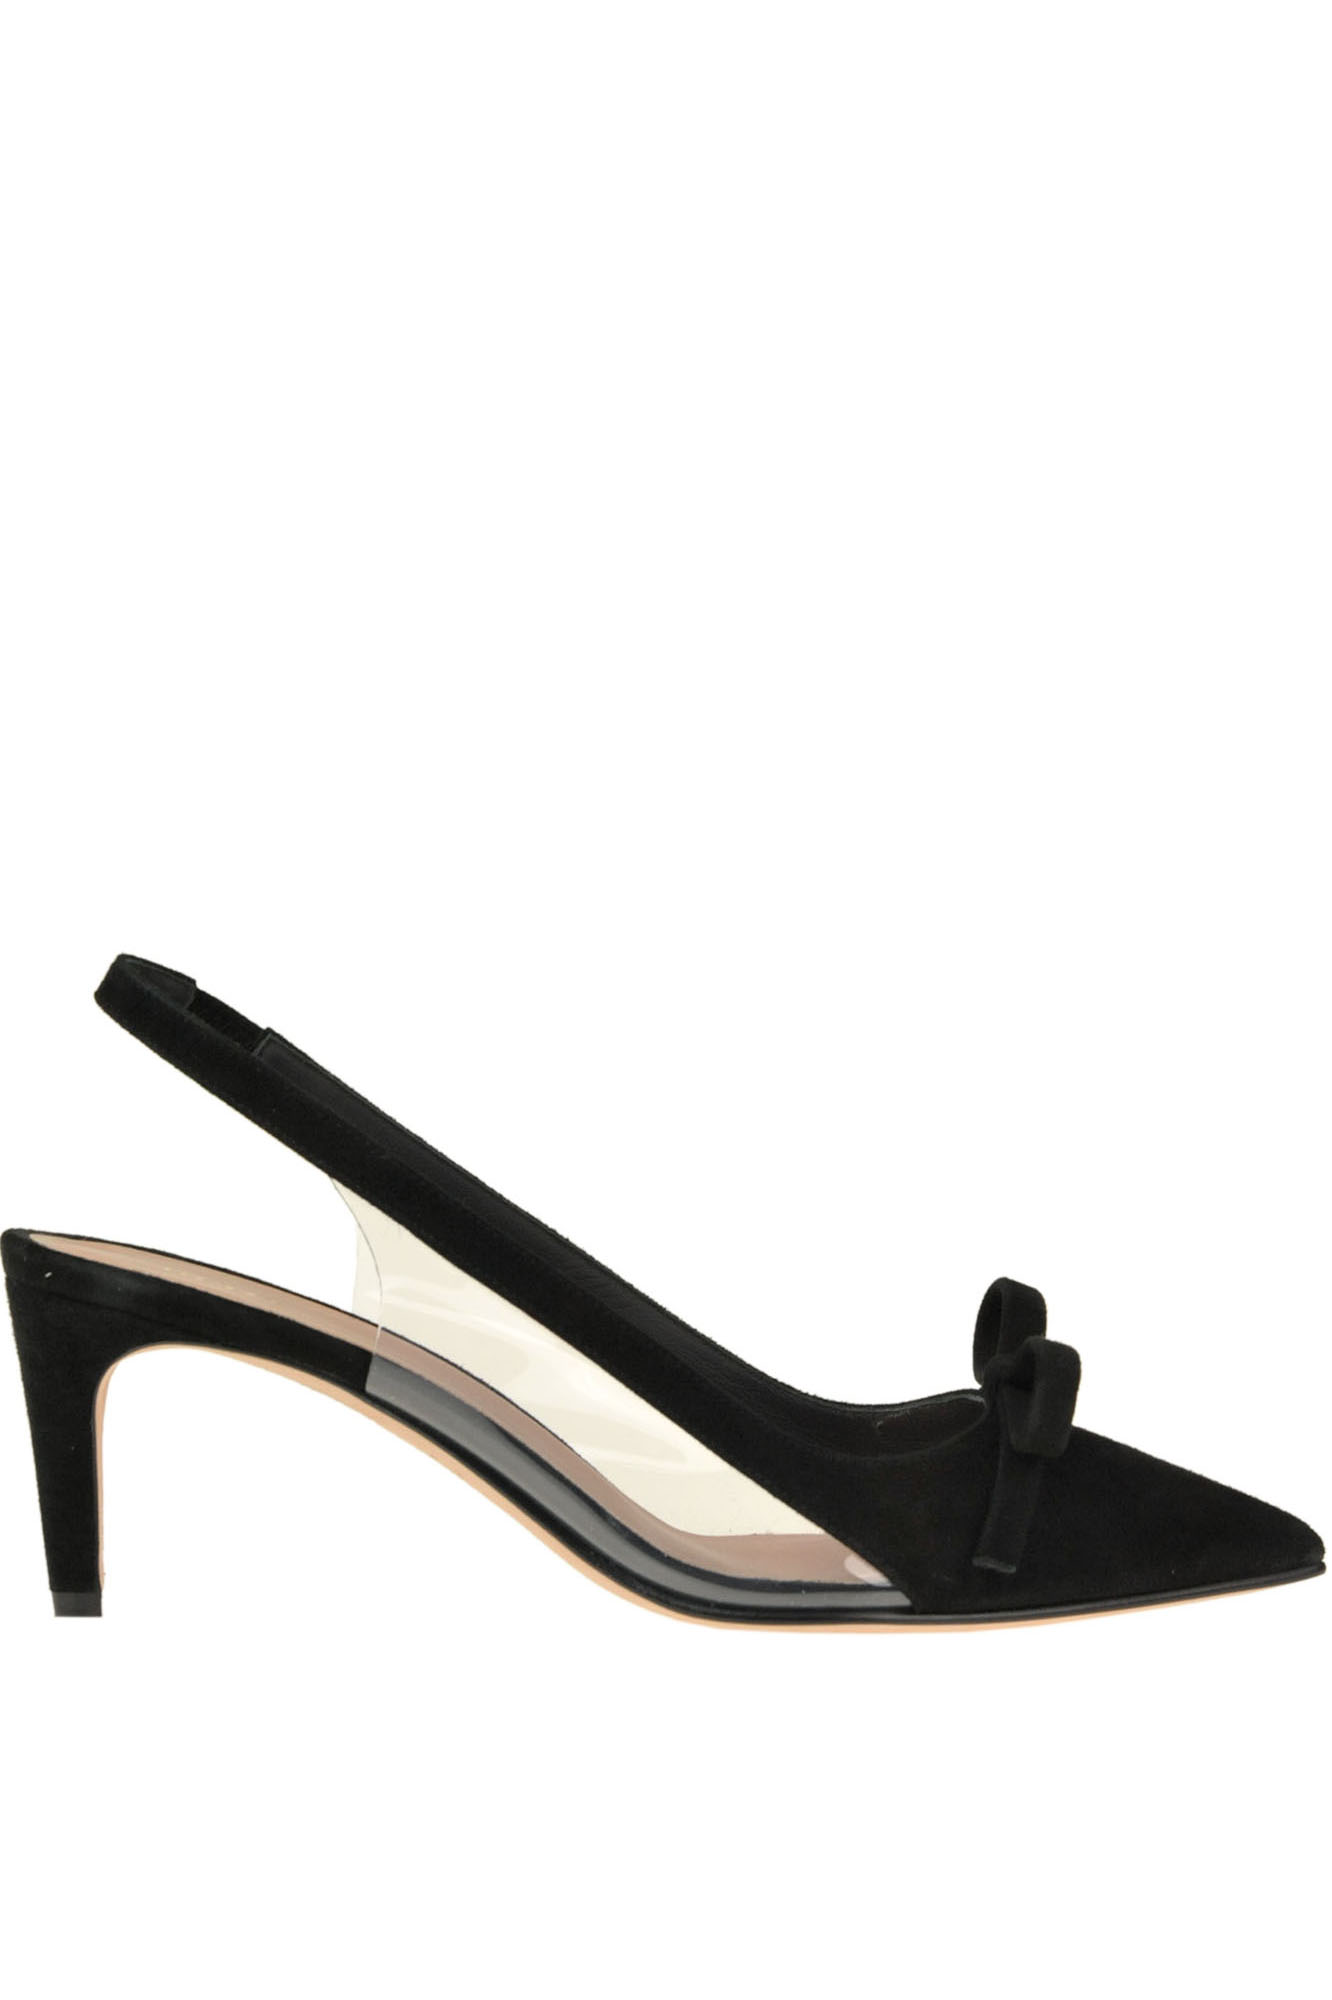 Red Valentino SUEDE SLINGBACK PUMPS